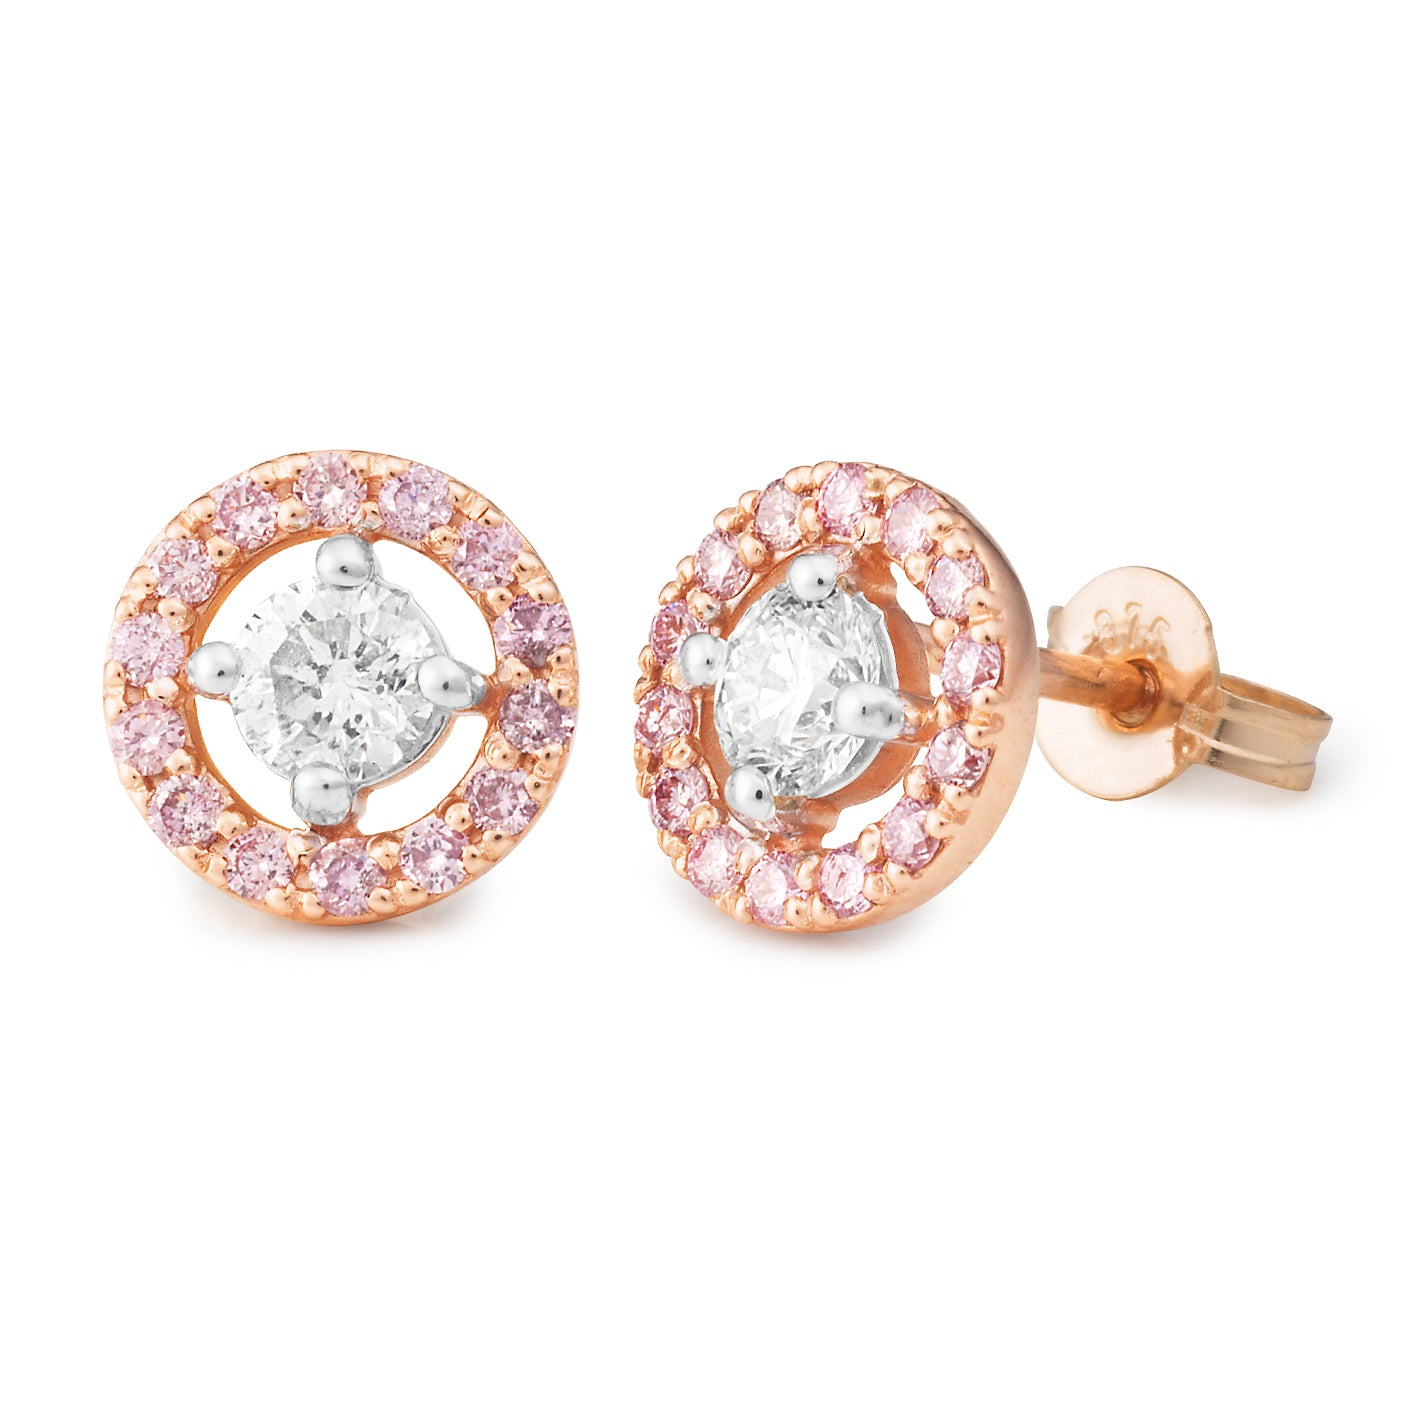 DIAMOND CLAW/BEAD SET EARRING PINK CAVIAR IN 9CT ROSE GOLD (SI3 JK) TDW 0.78CT